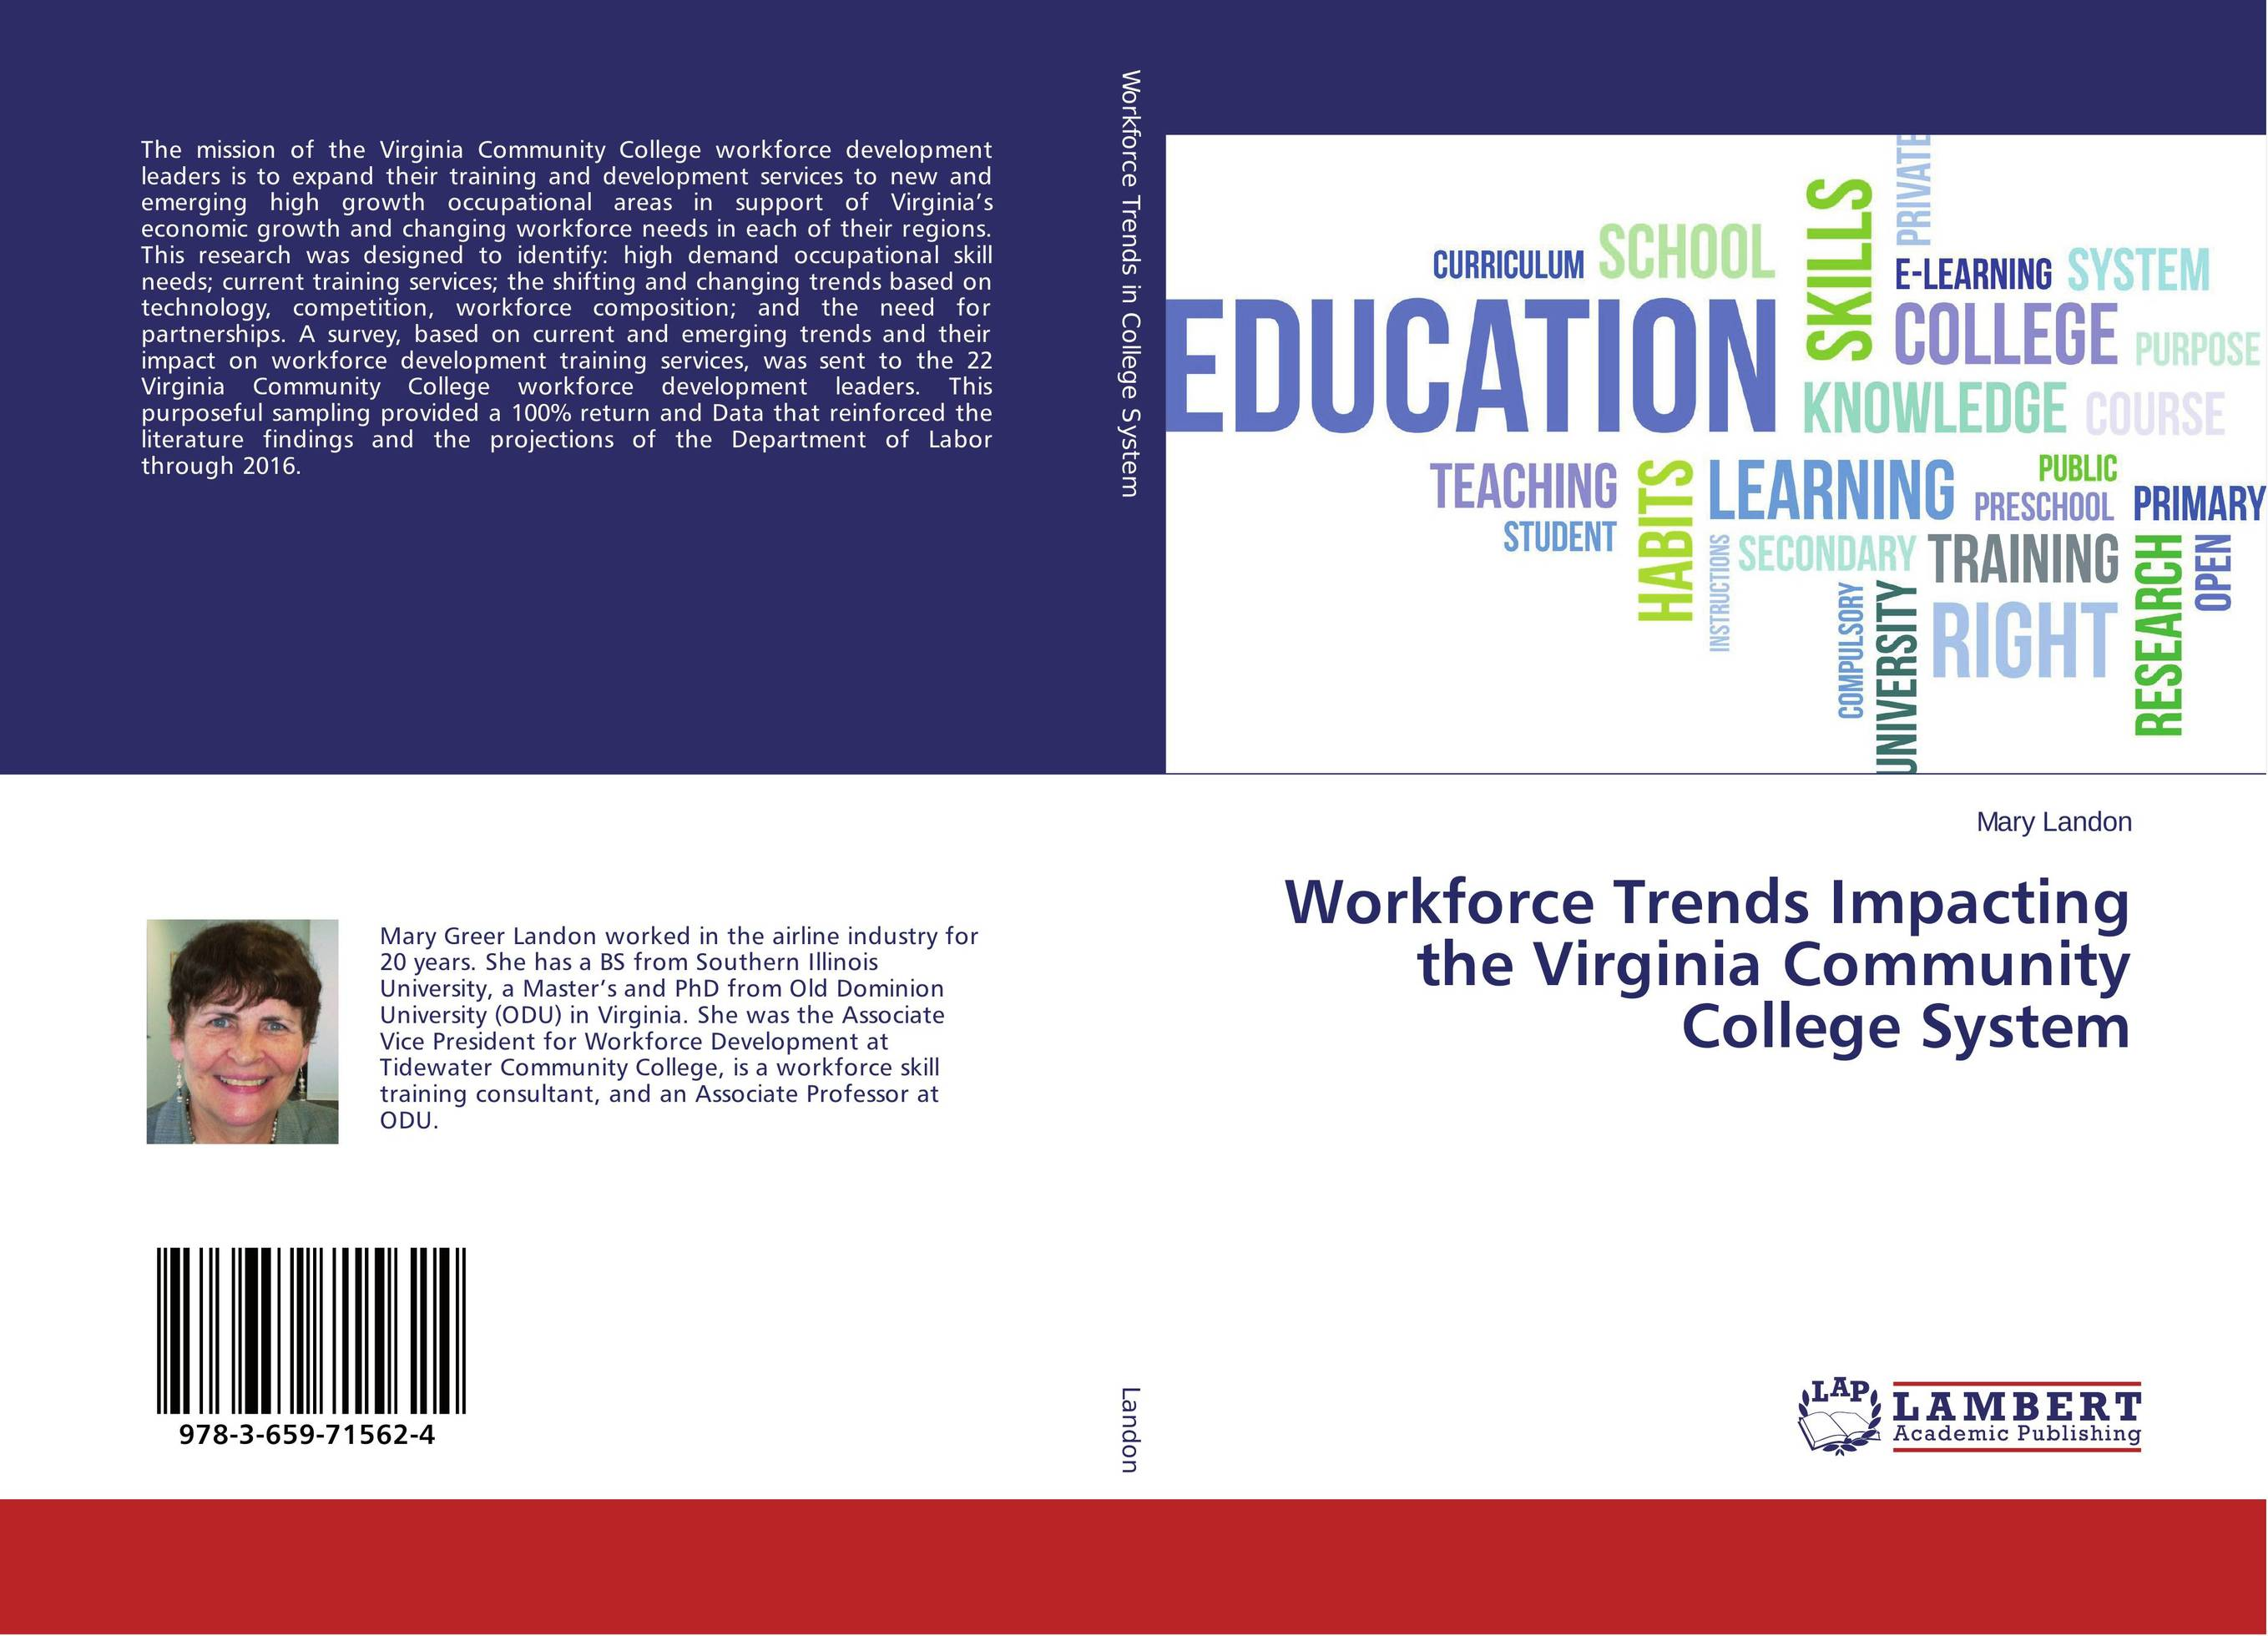 Workforce Trends Impacting the Virginia Community College System